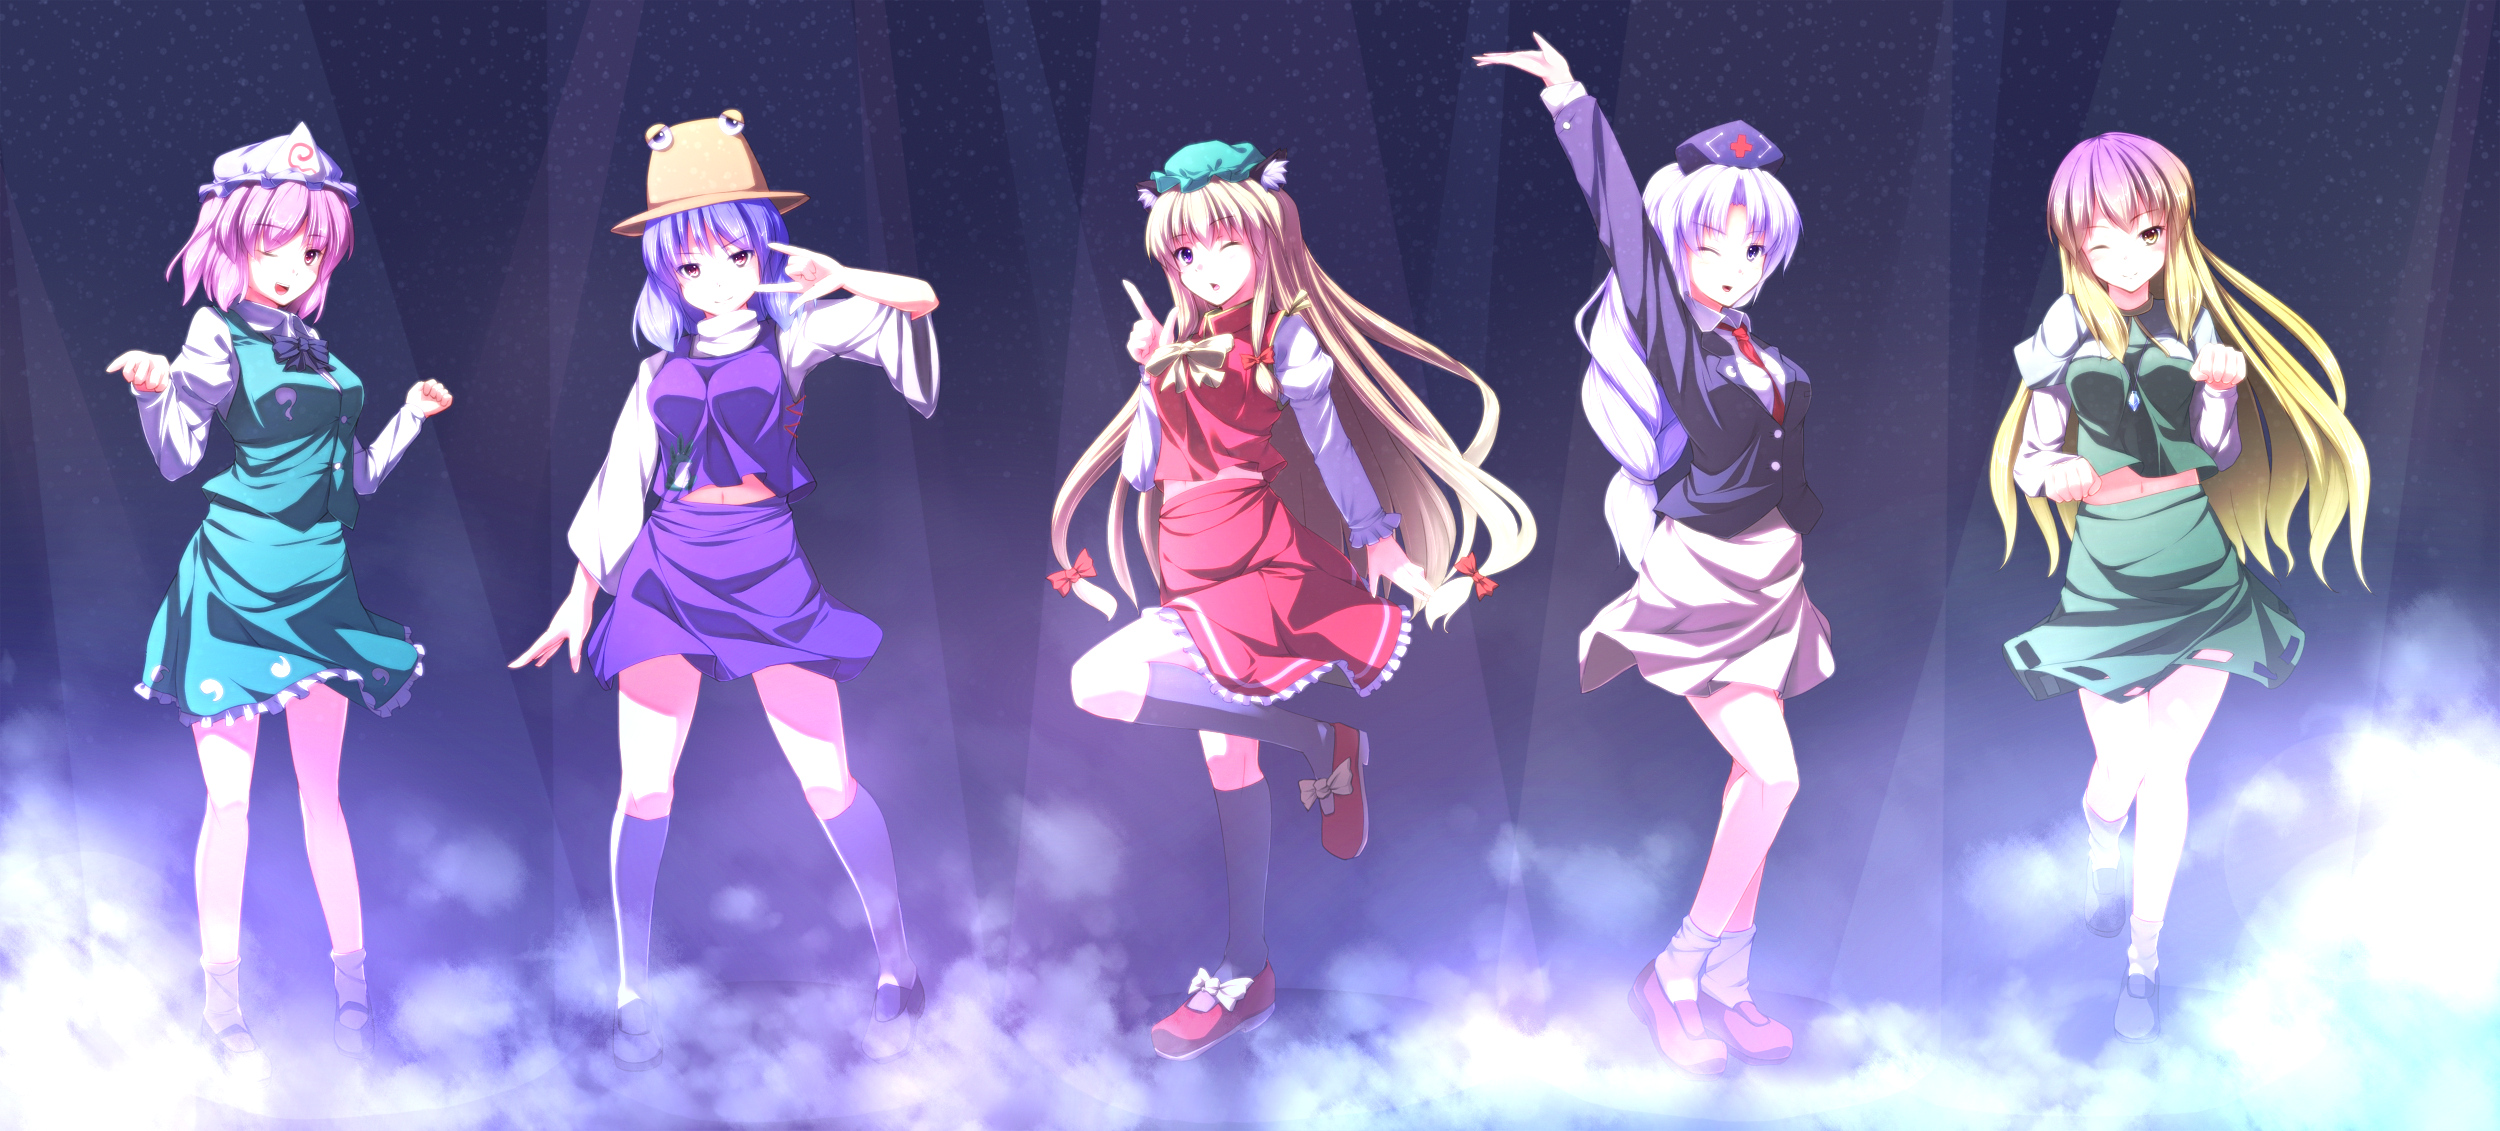 Pink Anime Wallpaper Touhou Wallpaper Pack 08 04 2012